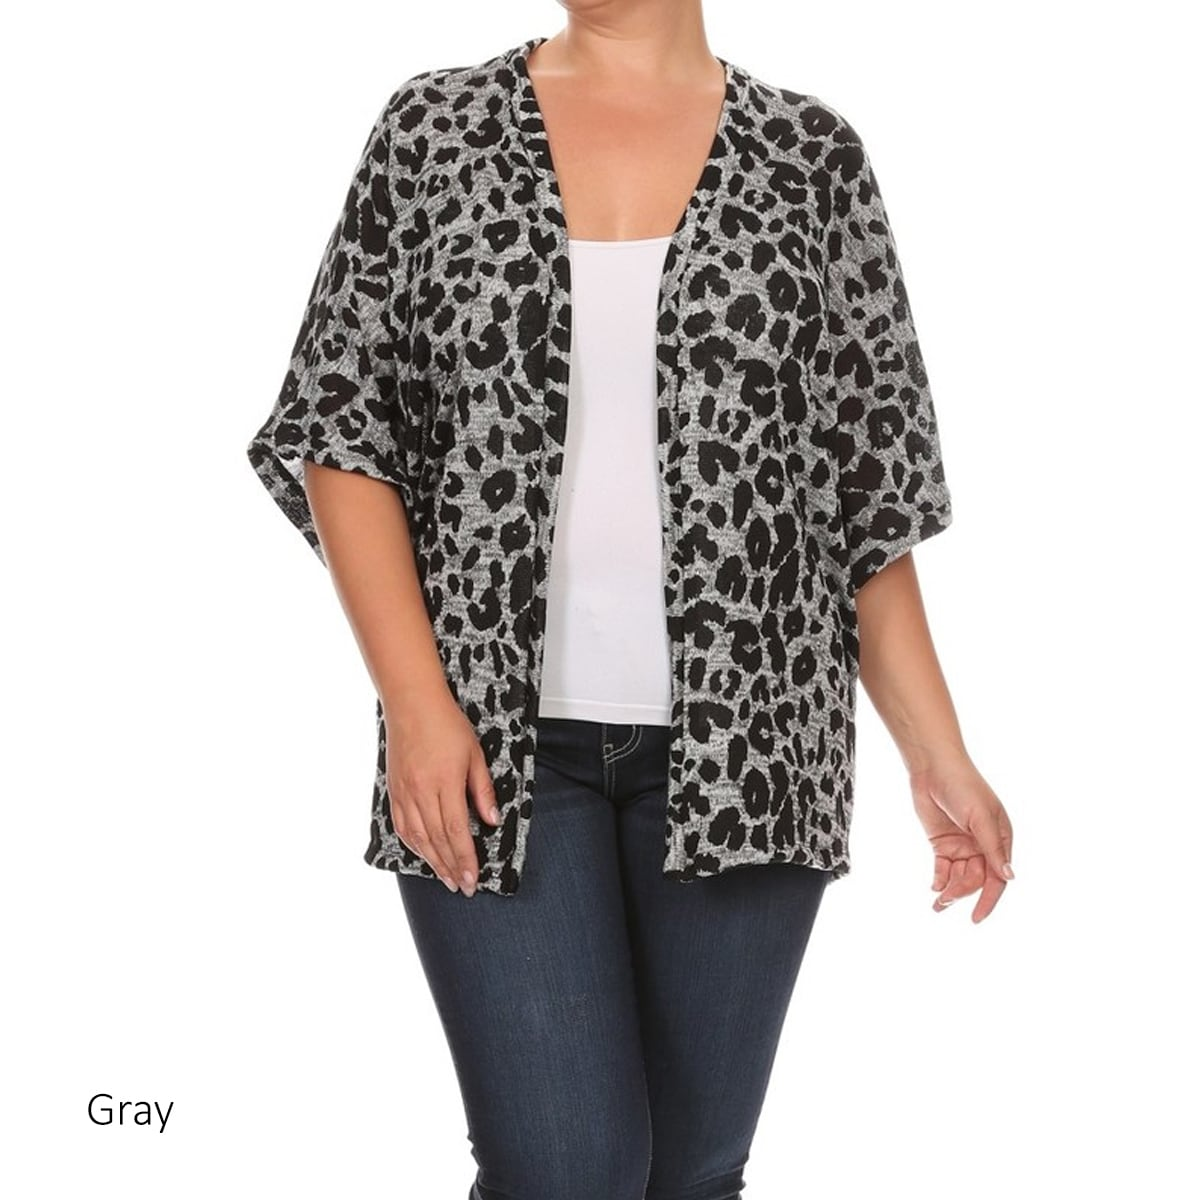 6322c6b643 Shop Women's Animal-print Plus-size Cardigan - Free Shipping On Orders Over  $45 - Overstock - 12505940